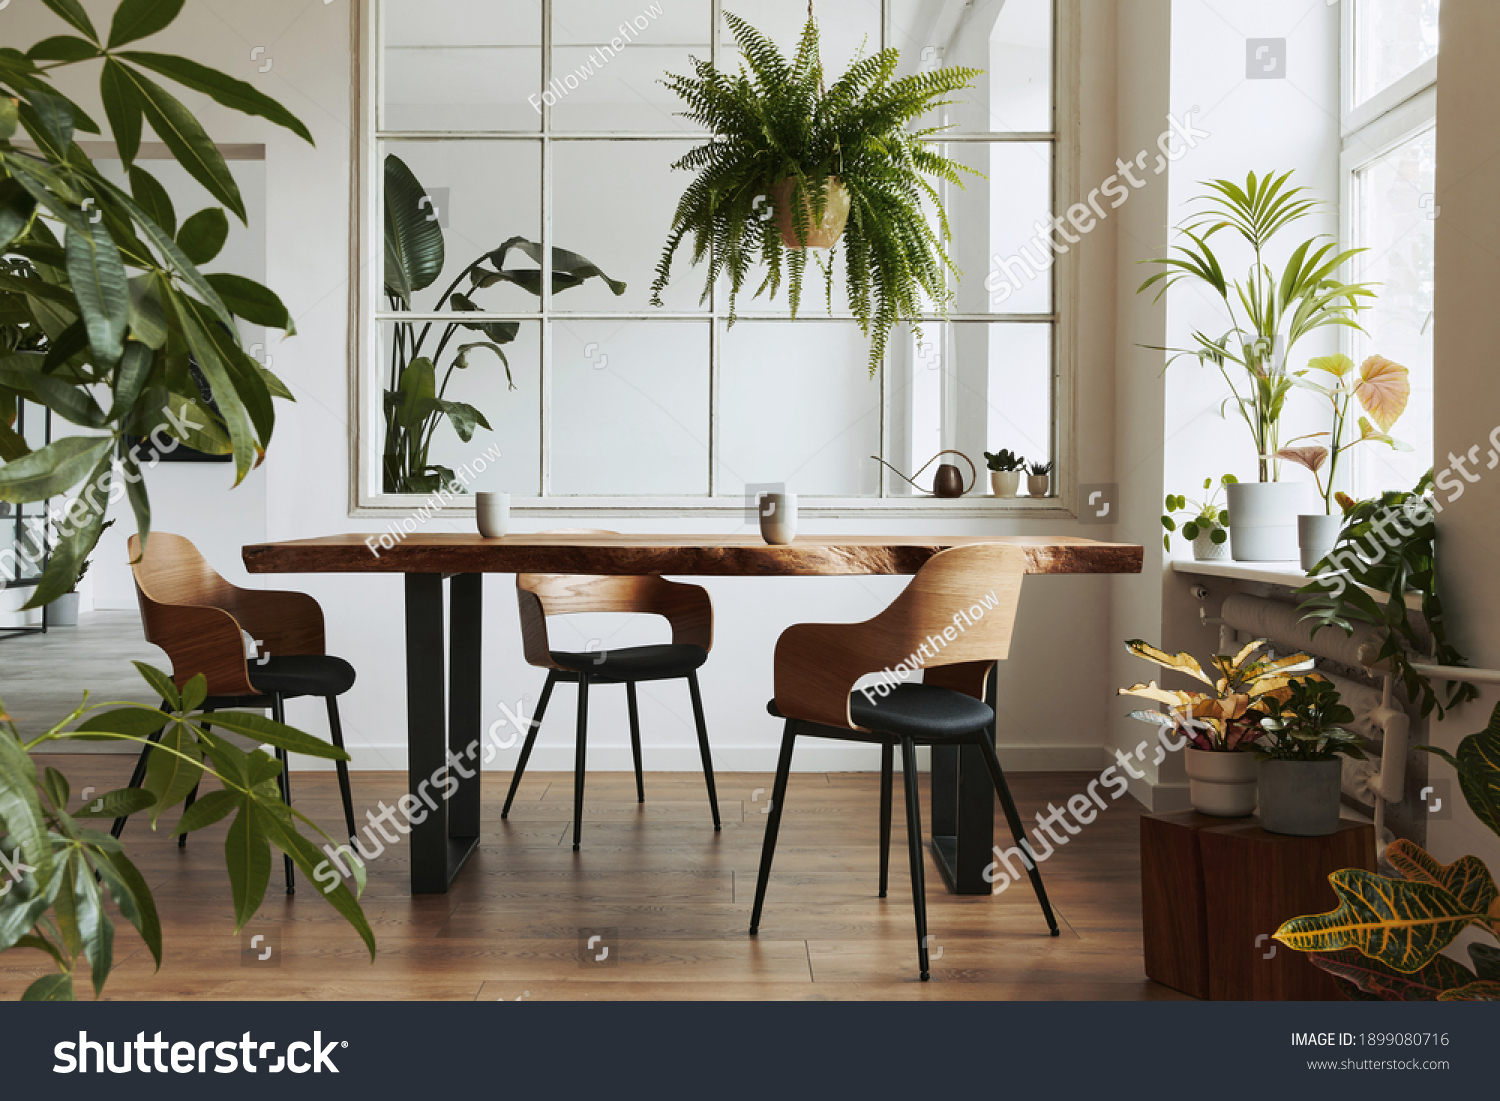 Stylish and botany interior of dining room with design craft wooden table, chairs, a lof of plants, big window, poster map and elegant accessories in modern home decor. Template. #1899080716